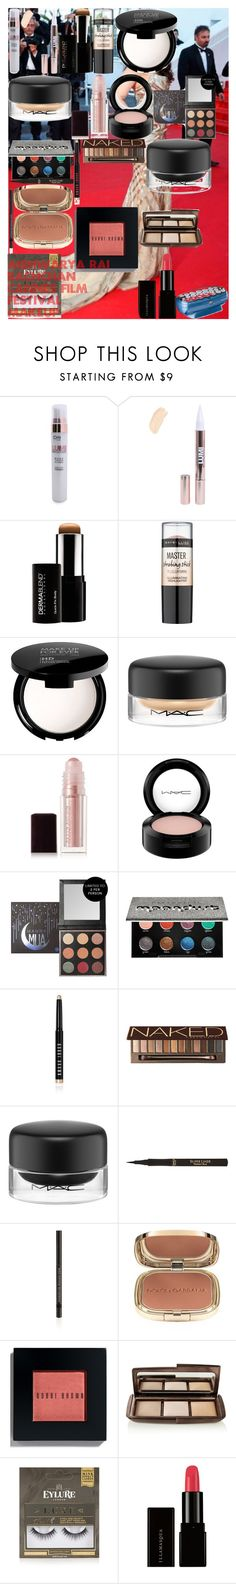 AISHWARYA RAI BACHCHAN Cannes Film Festival Makeup by oroartye-1 on Polyvore featuring beauty, Hourglass Cosmetics, Urban Decay, MAKE UP FOR EVER, Kevyn Aucoin, Dermablend, Dolce&Gabbana, Bobbi Brown Cosmetics, MAC Cosmetics and Illamasqua